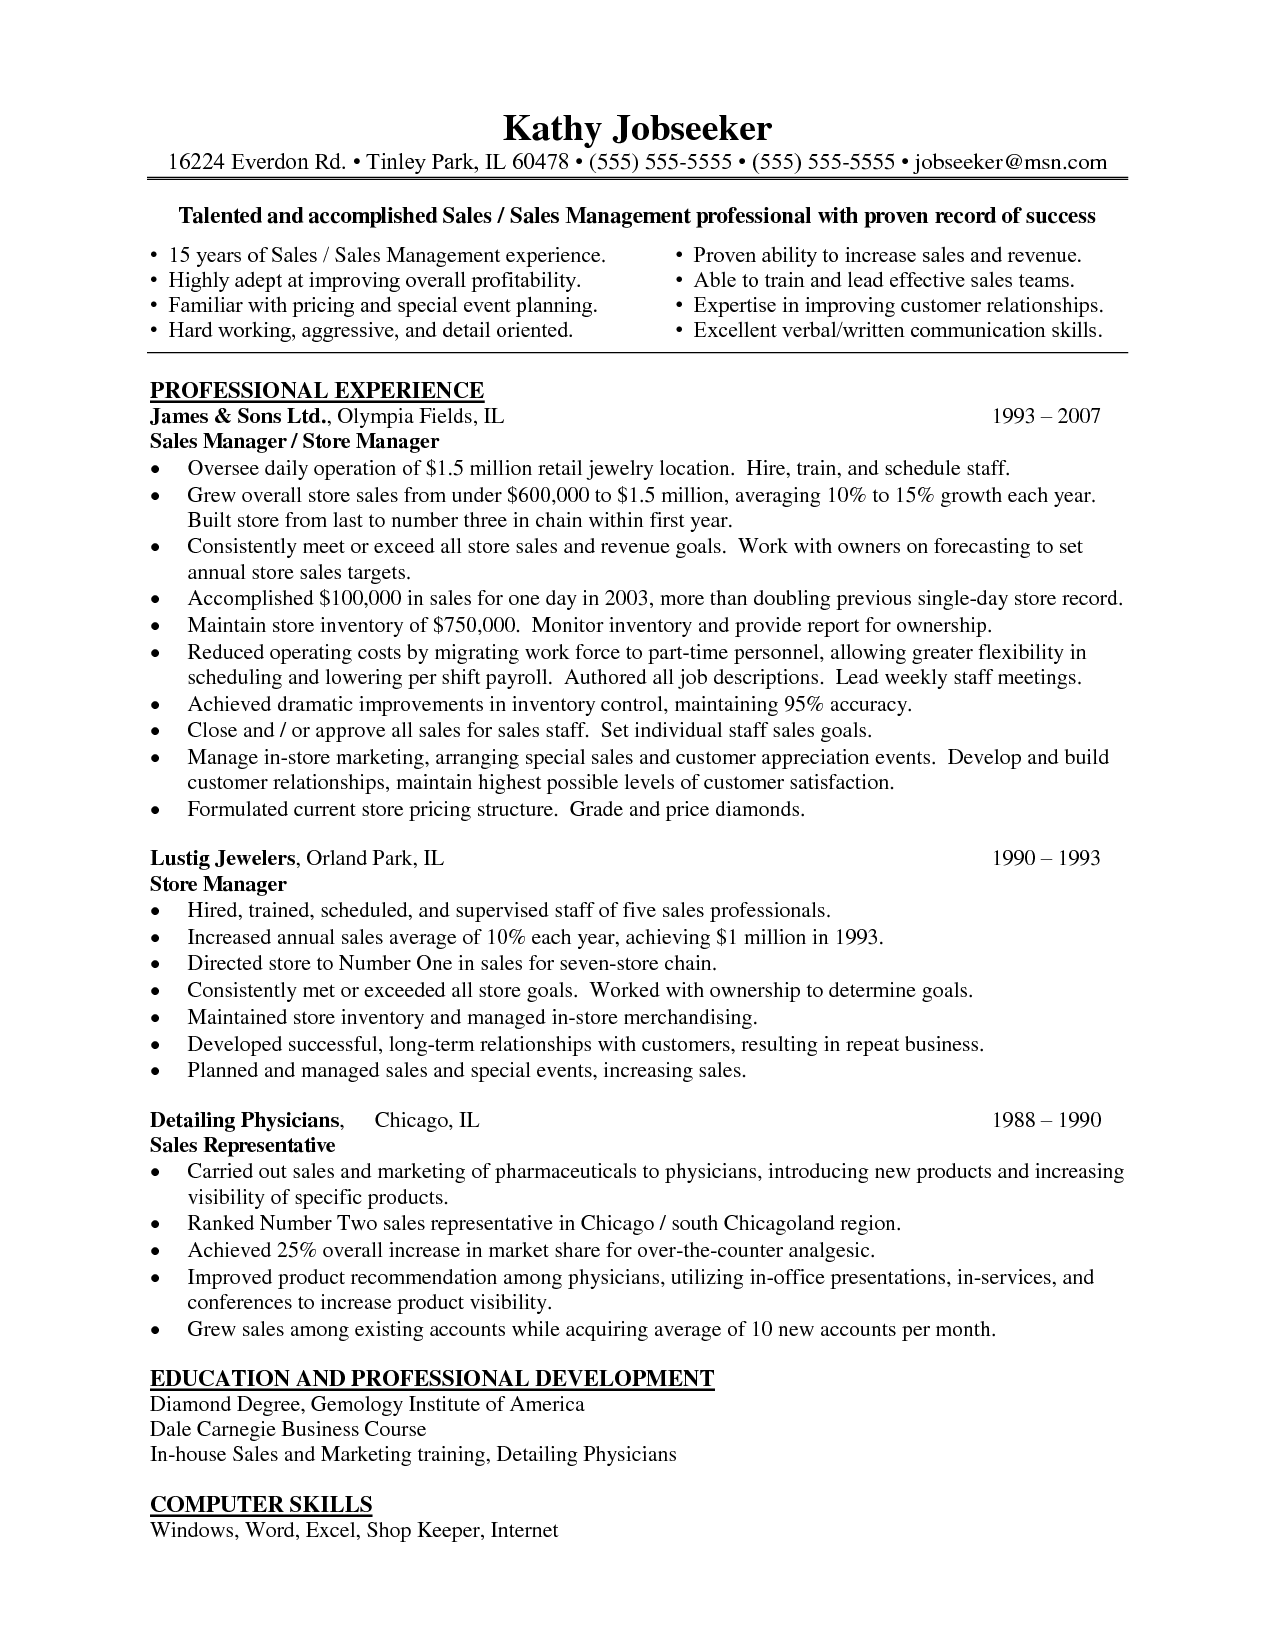 Best Resume For Management Position Resume Examples For Retail Store Manager Sample Cover